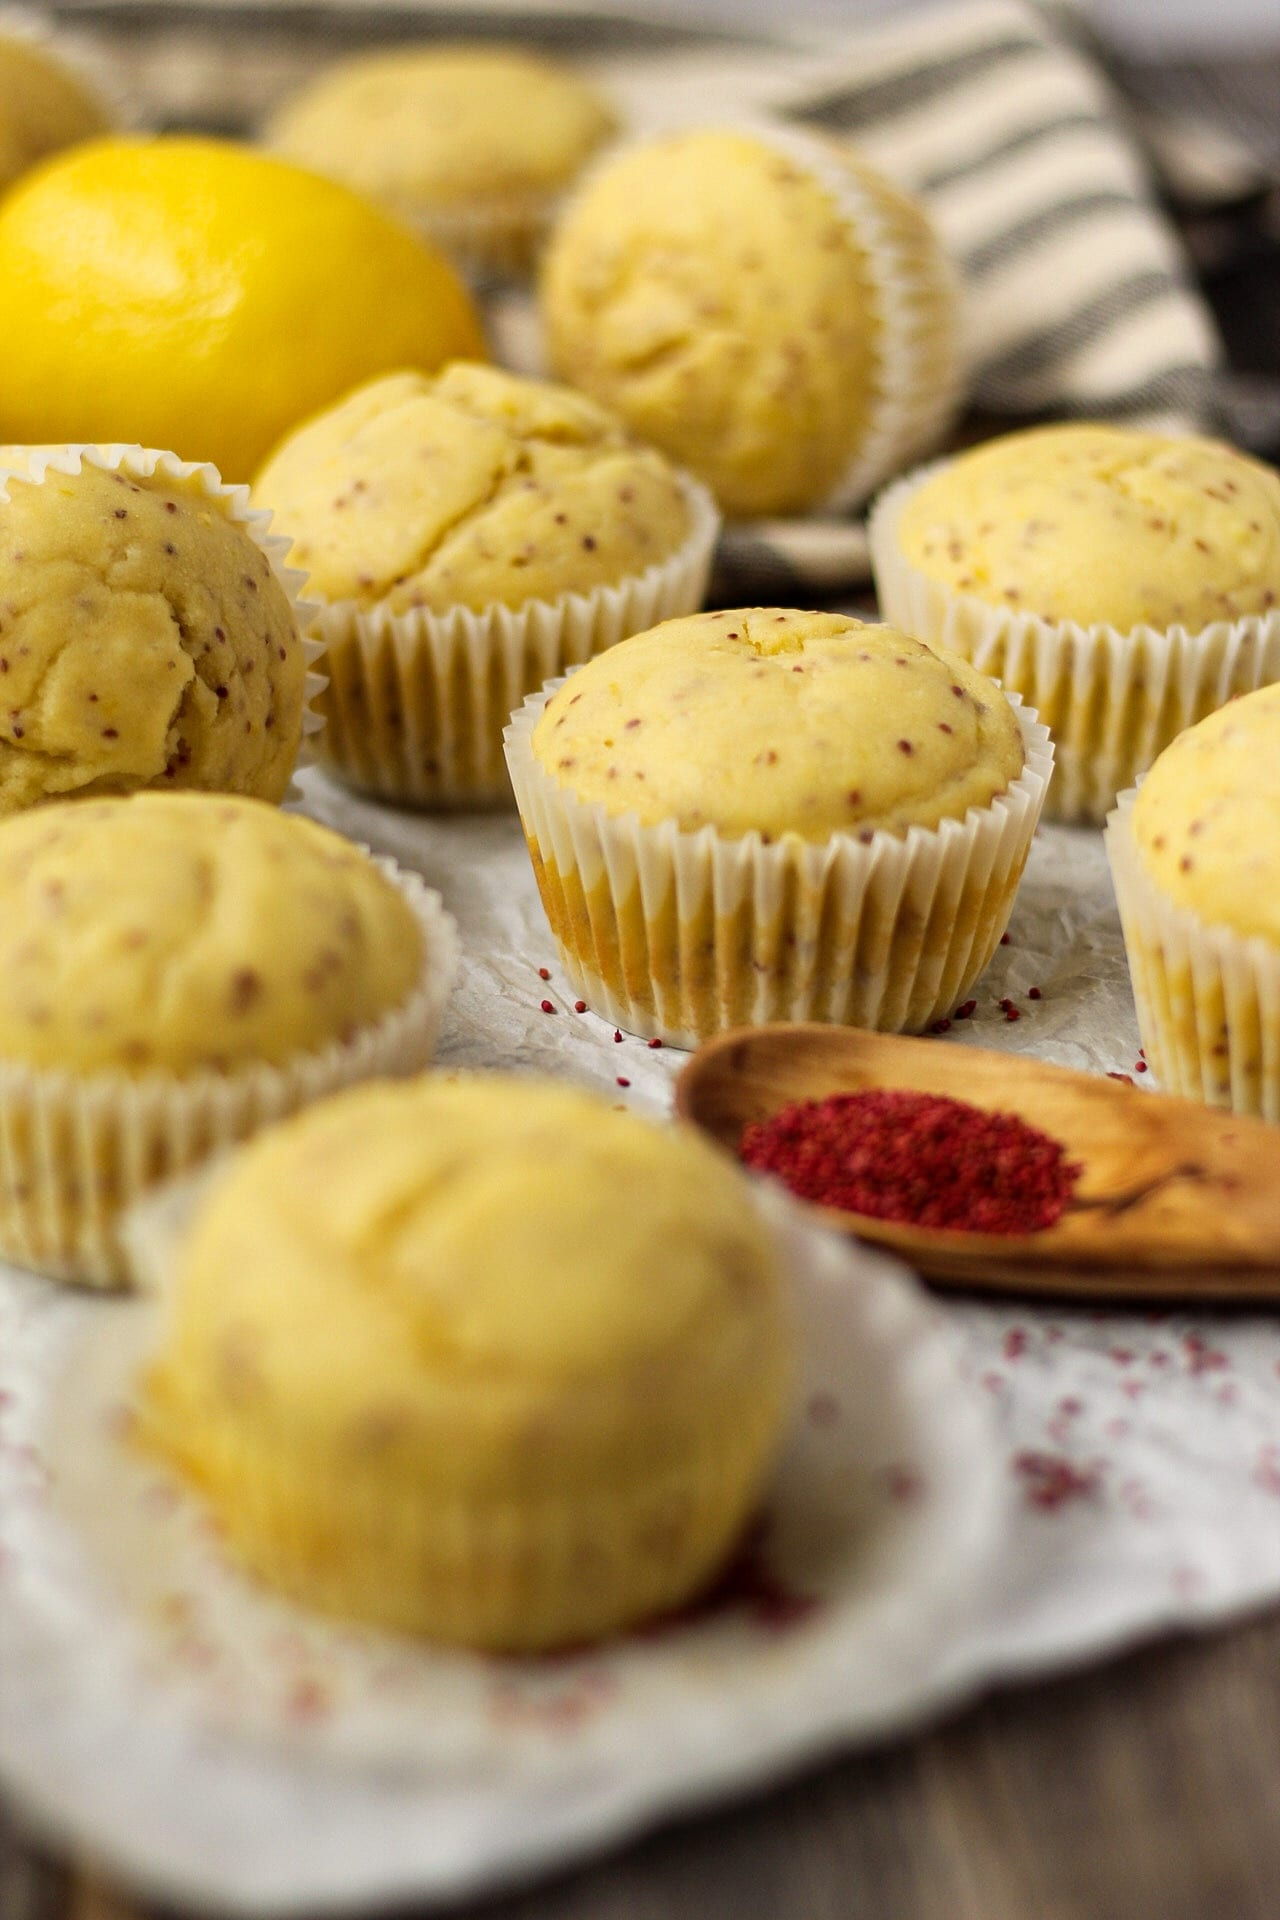 side angle shot of Lemon Cranberry Seed Cupcakes with Lemon Greek Yogurt Frosting on top parchment paper with cranberry seeds scattered on parchment and a wooden spoon filled with cranberry seeds in bottom right of shot. cloth napkin and whole lemon in background.